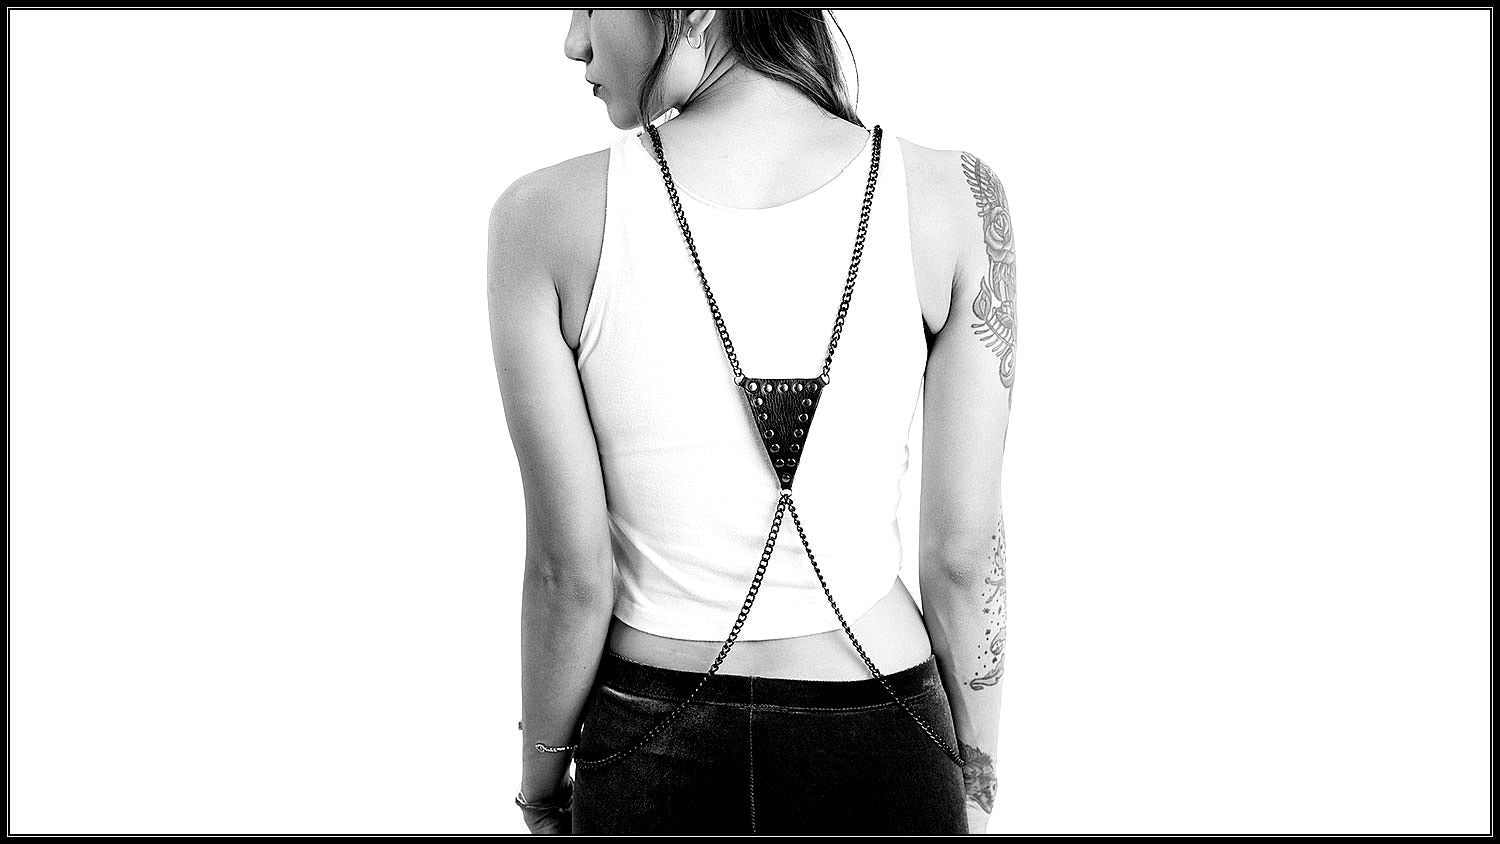 body chain outfit - shop body chains - BLACKCLOTH